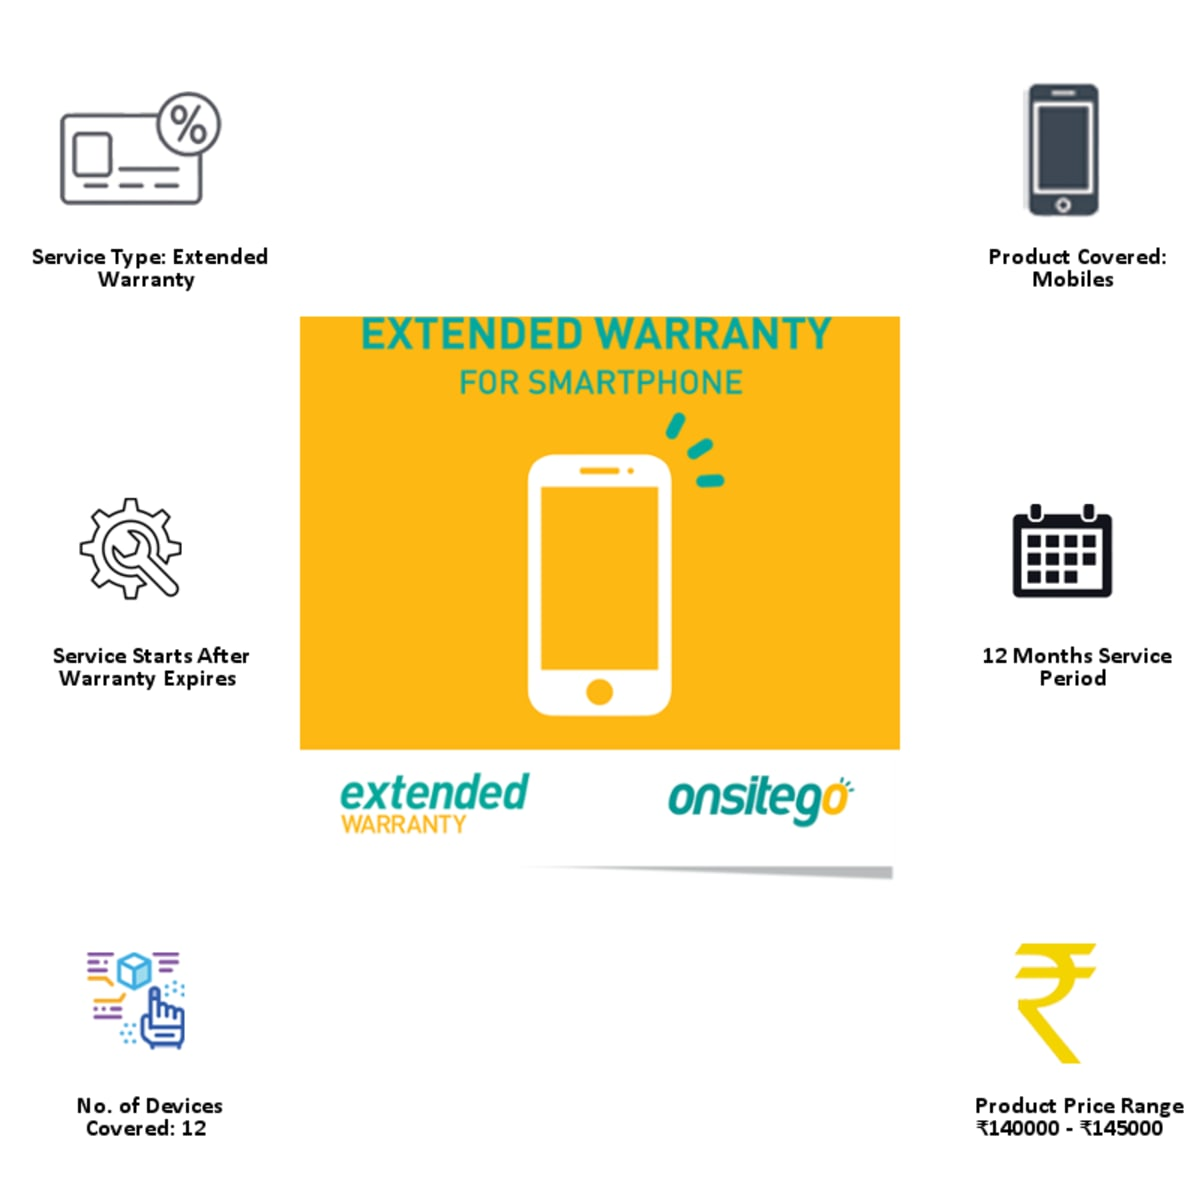 Onsitego 1 Year Extended Warranty for Smartphone (Rs.140,000 - Rs.145,000)_8